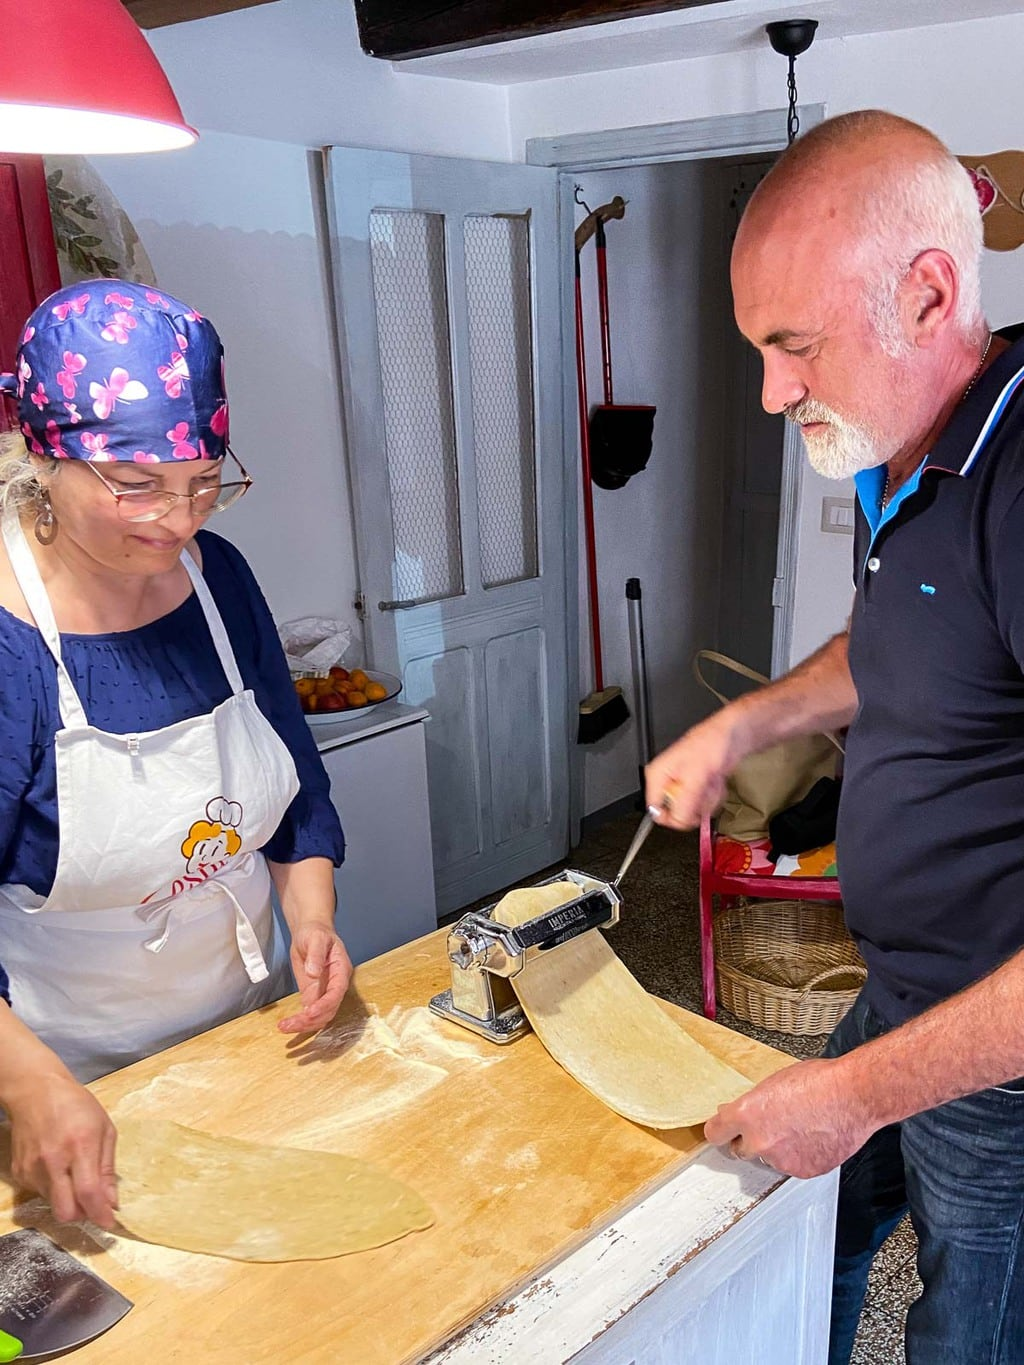 Vertical photo of Franca and Marcello creating the pasta for the meal.